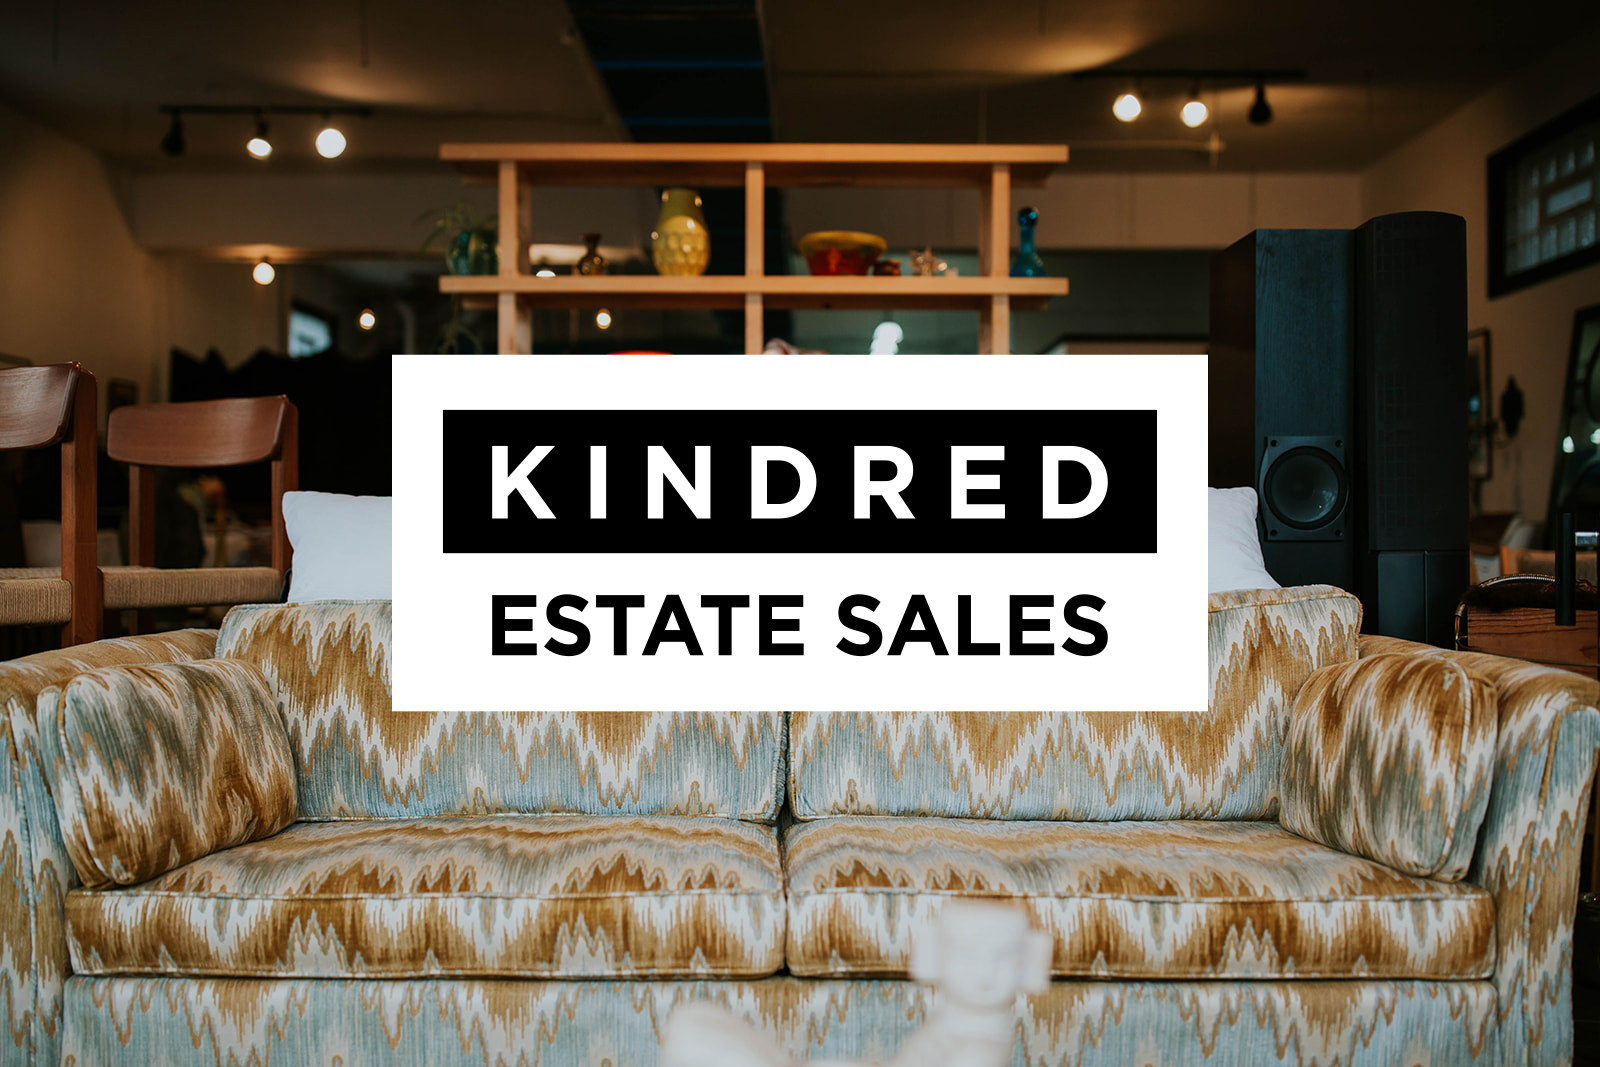 Kindred Estate SalEs - Kindred Estate Sales provides a stress-free experience for individuals and families coping with the task of selling or removing belongings as a result of a major life transition. We provide a myriad of services such as organizing and staging, research and pricing, marketing and selling, and cleanup and removal.